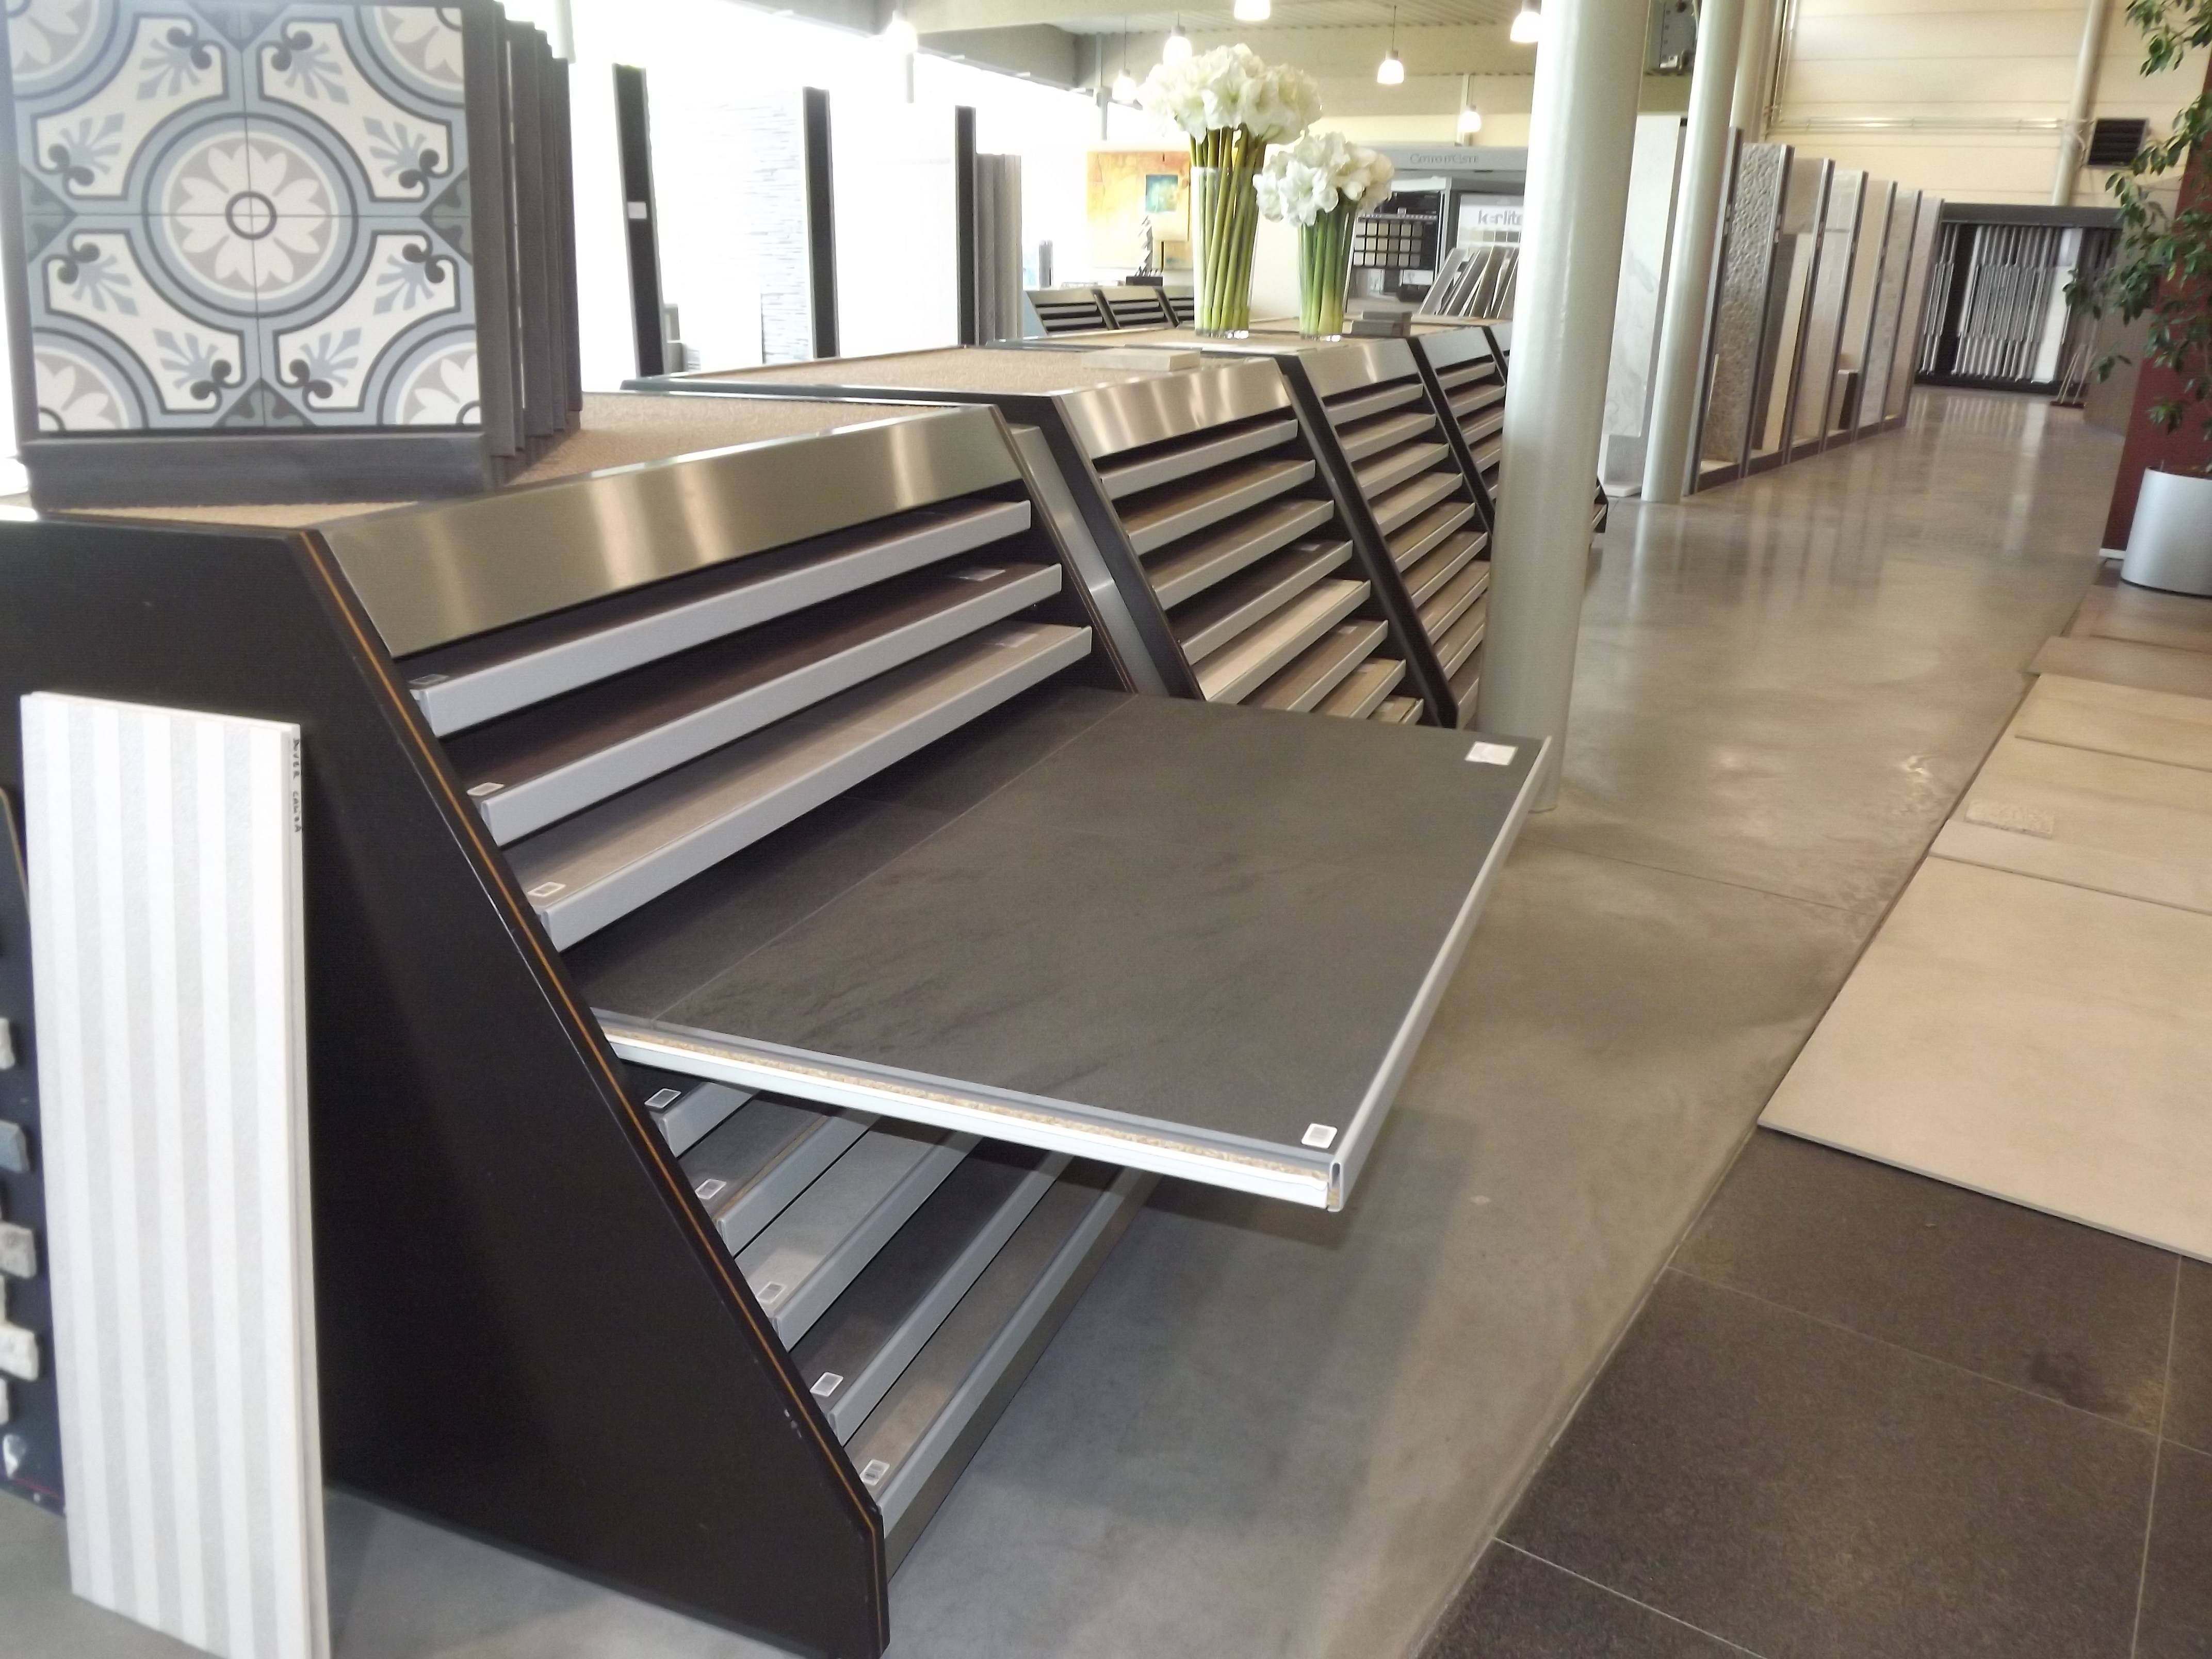 Display carrelage occasion bart rotsaert machinery for Carrelage occasion